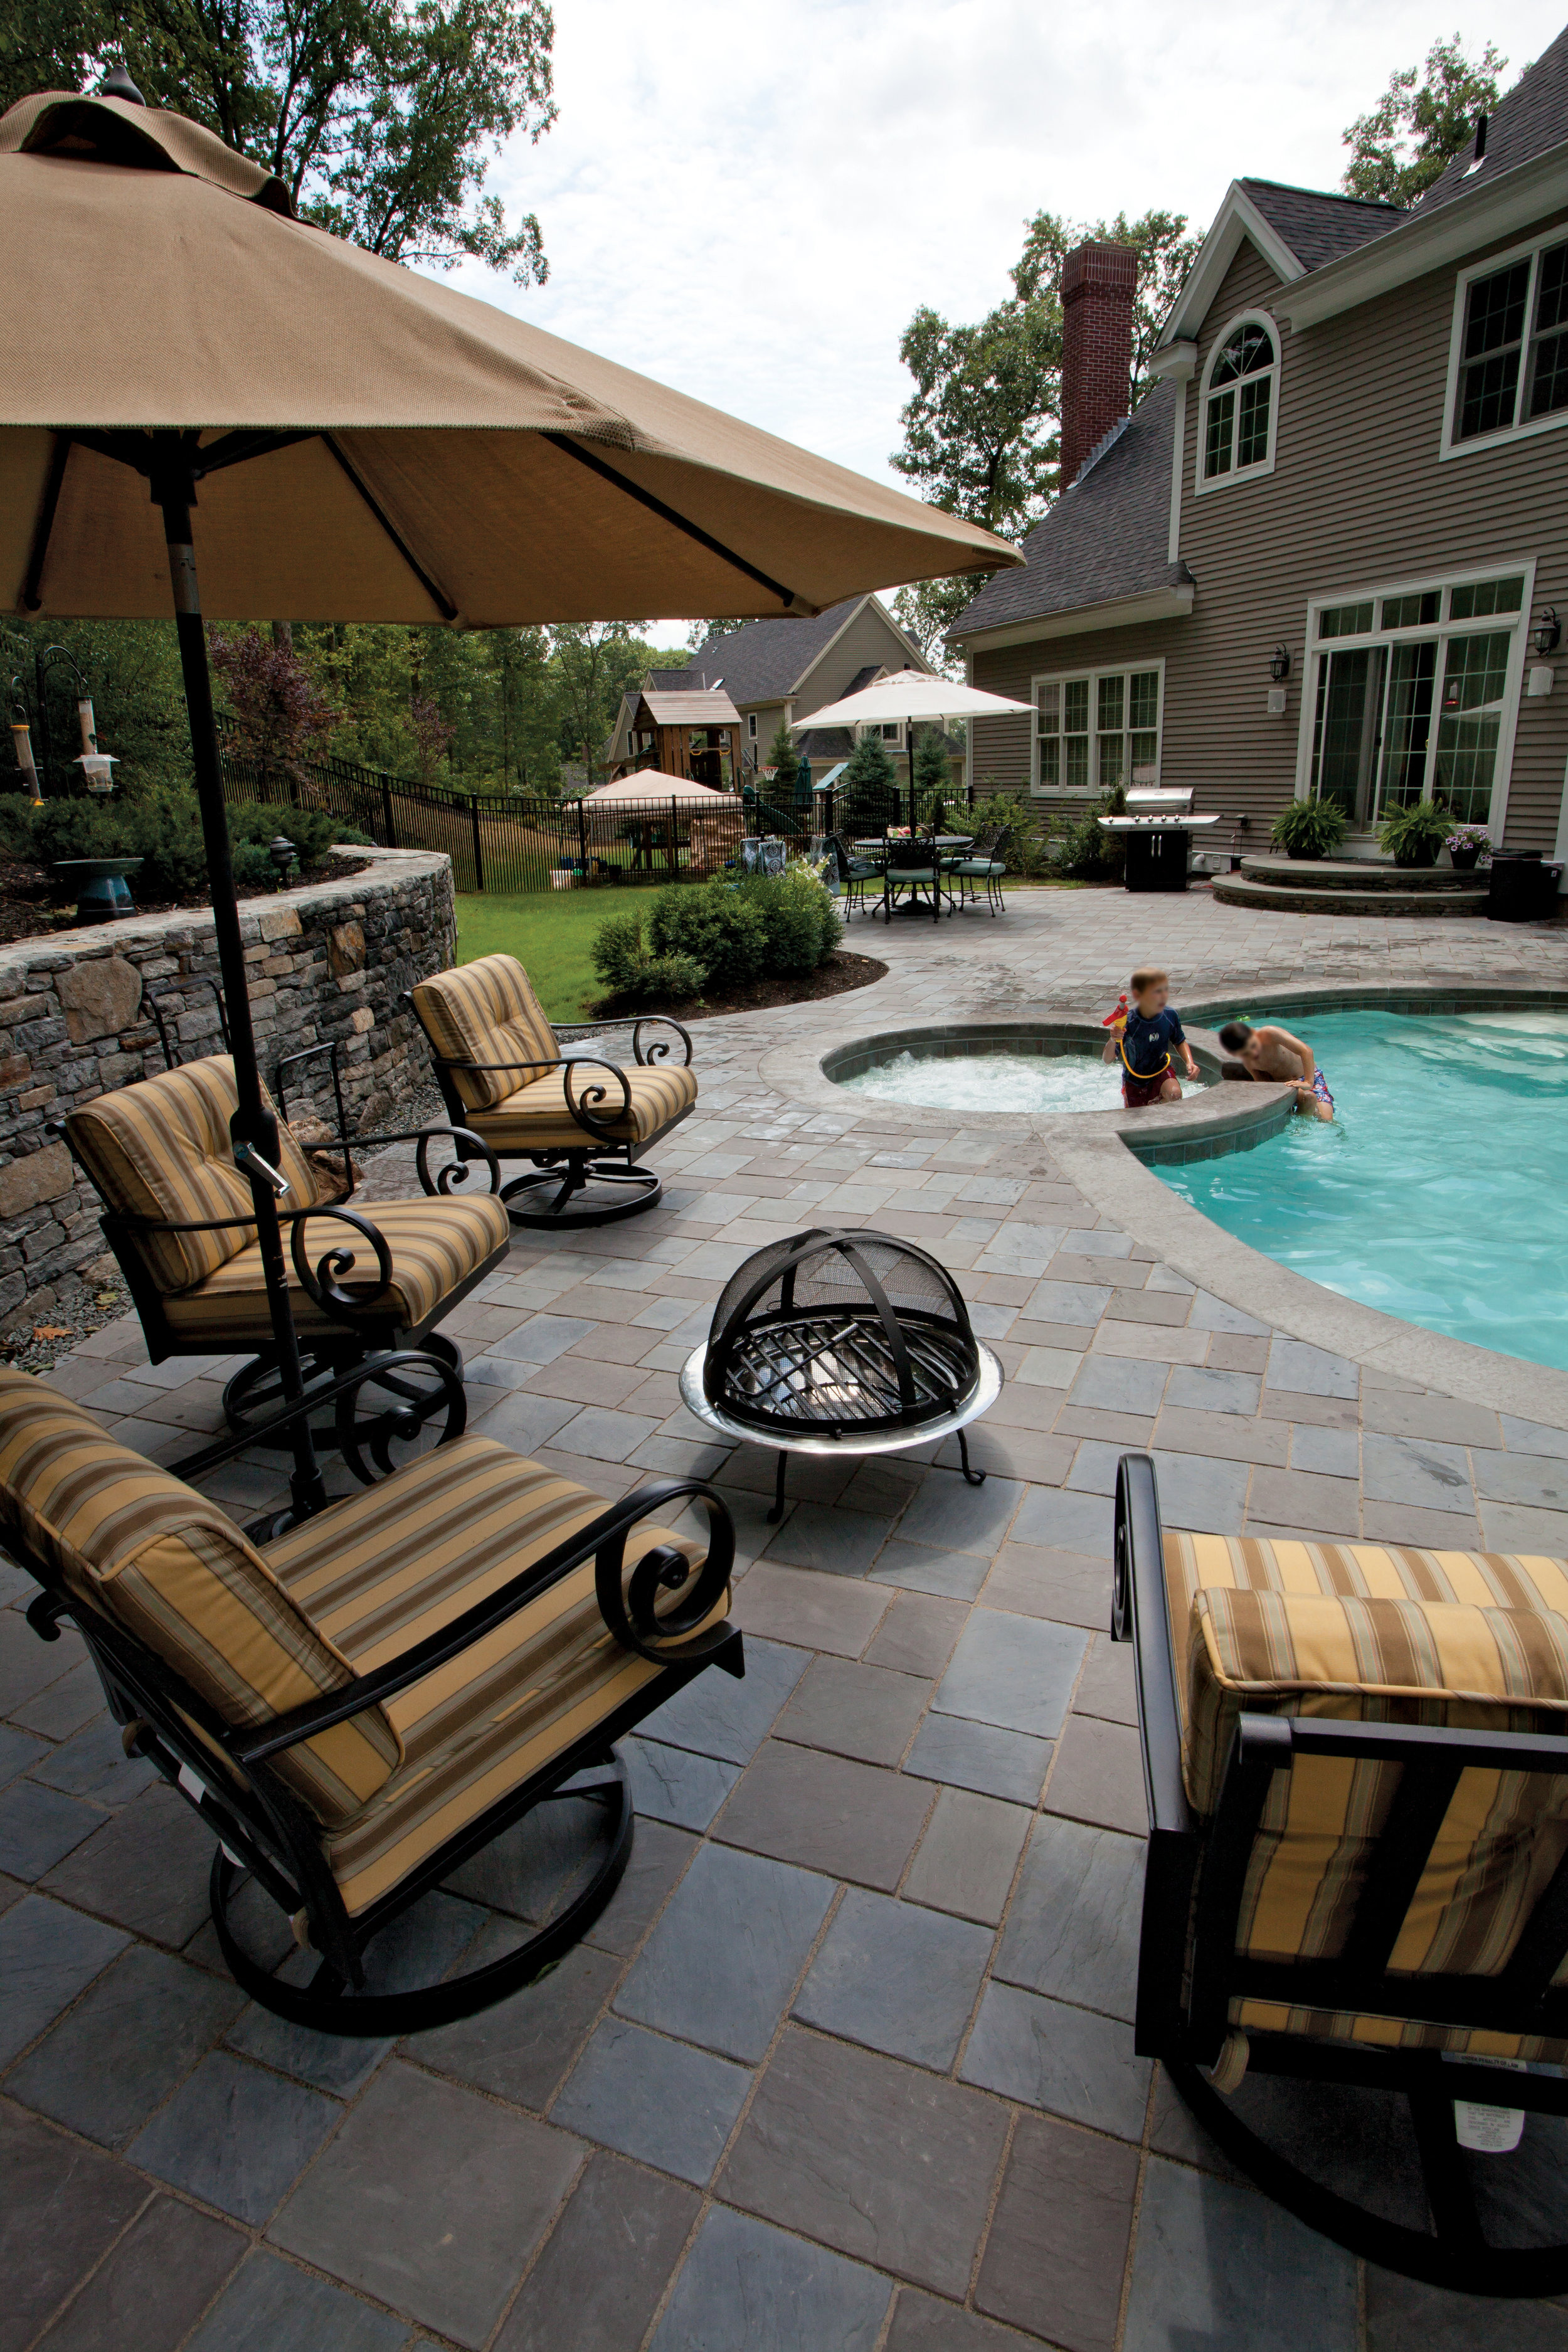 Ideal Non-Slip and Water Resistant Pavers for Your Schuylkill County, PA, Pool Patio